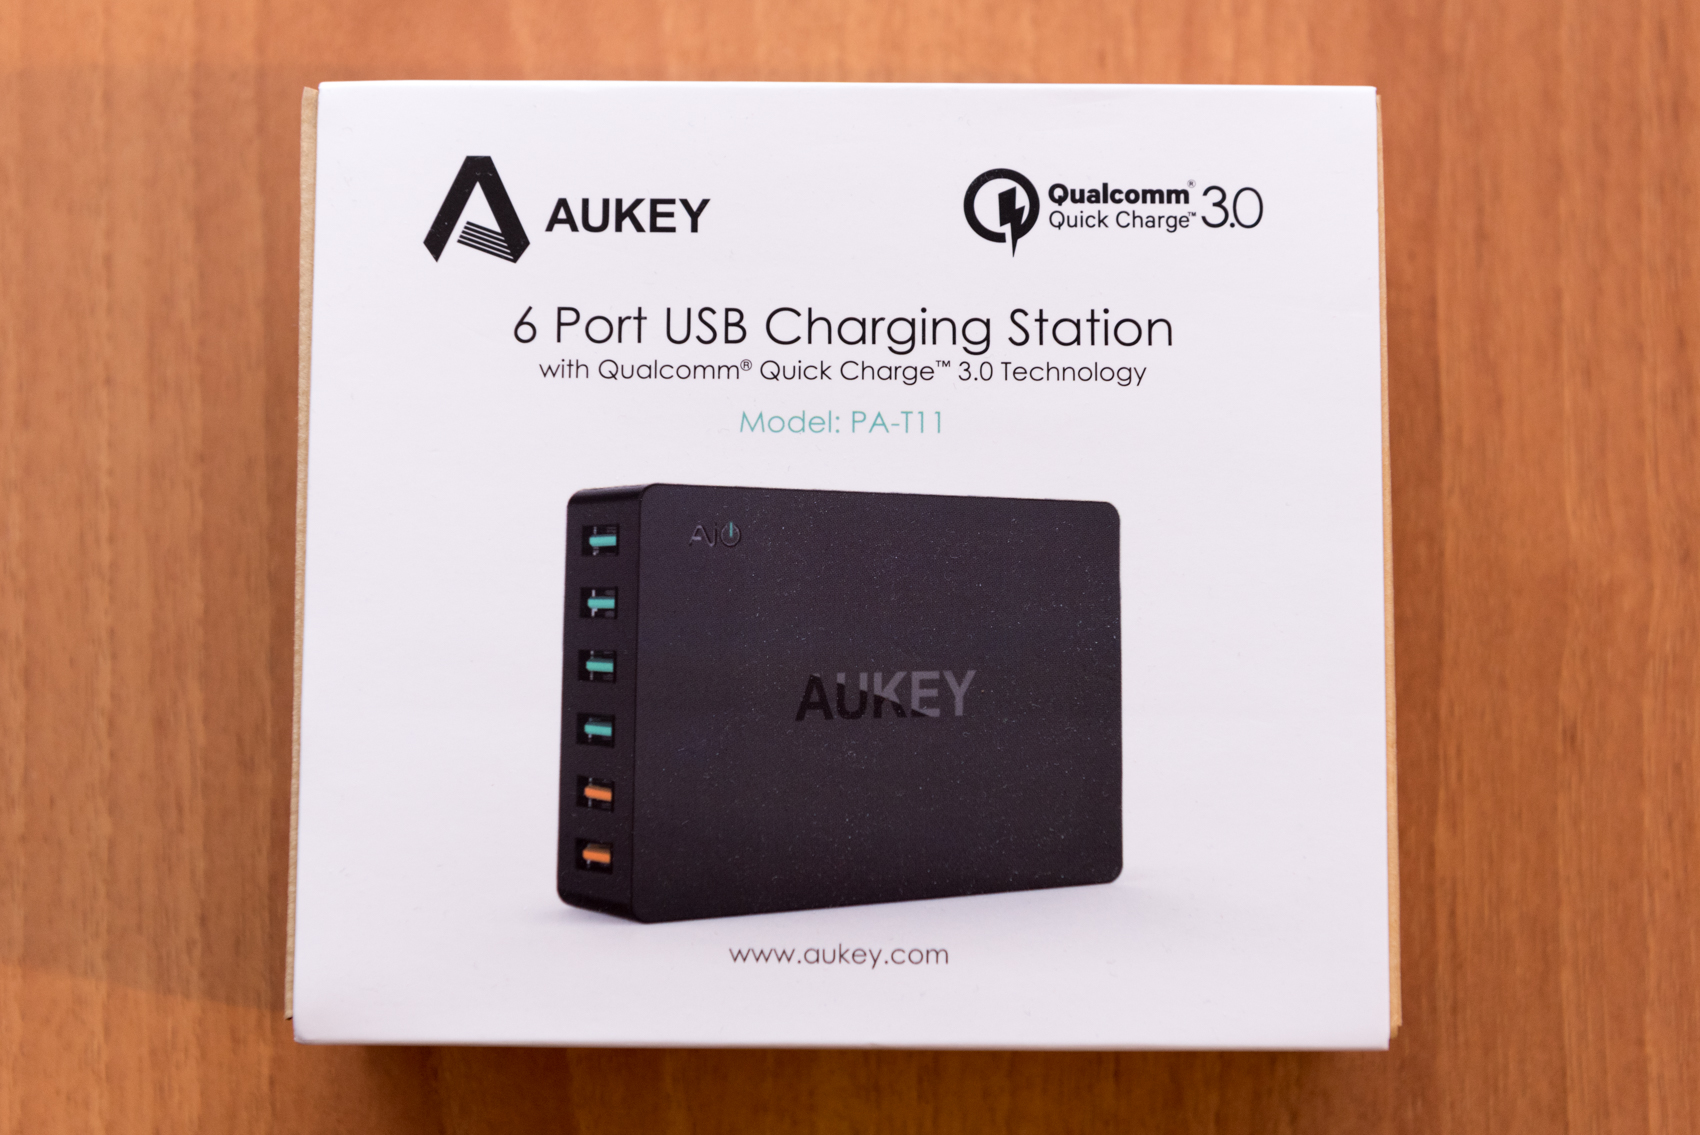 AUKEY PA T11 unboxing